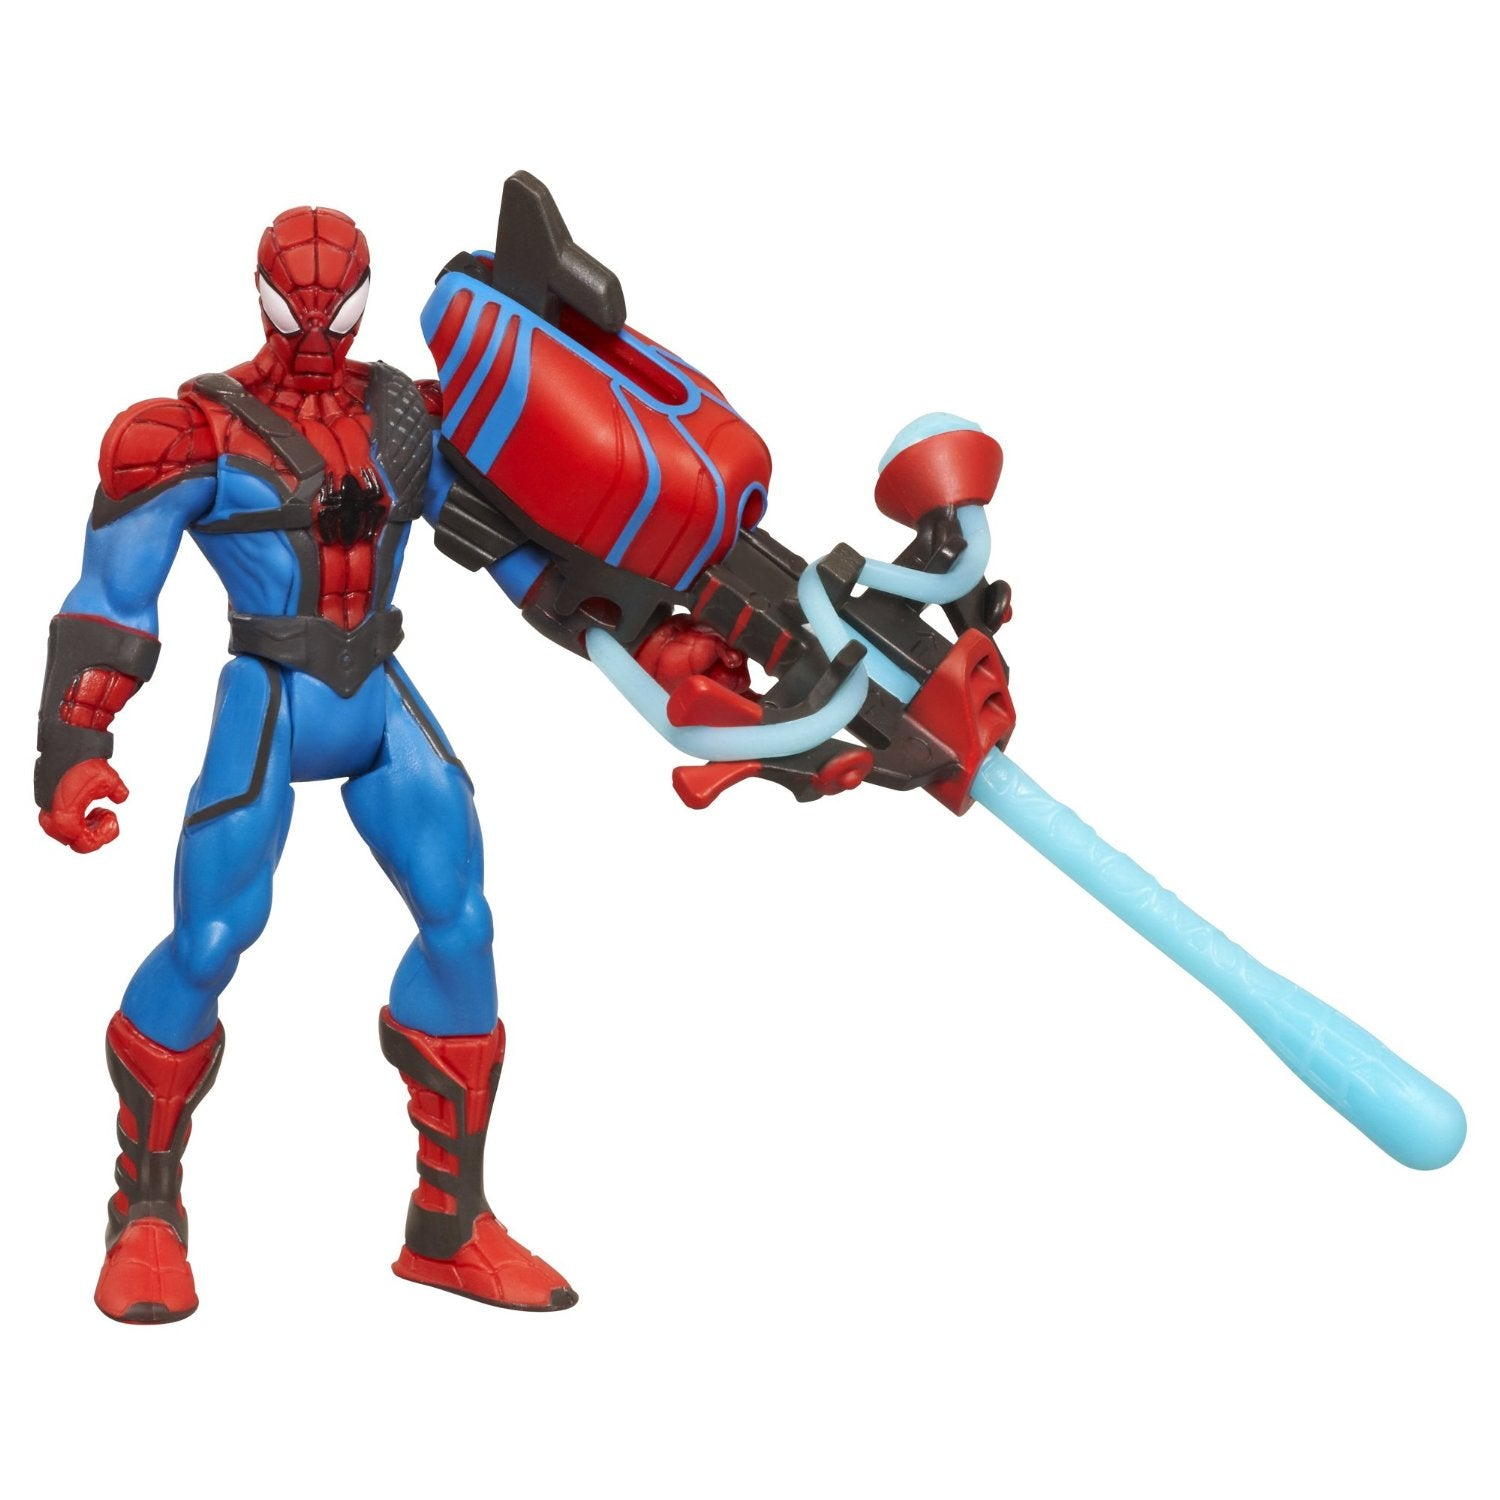 Spider-Man Toys - Crossbow Chaos Action Figure